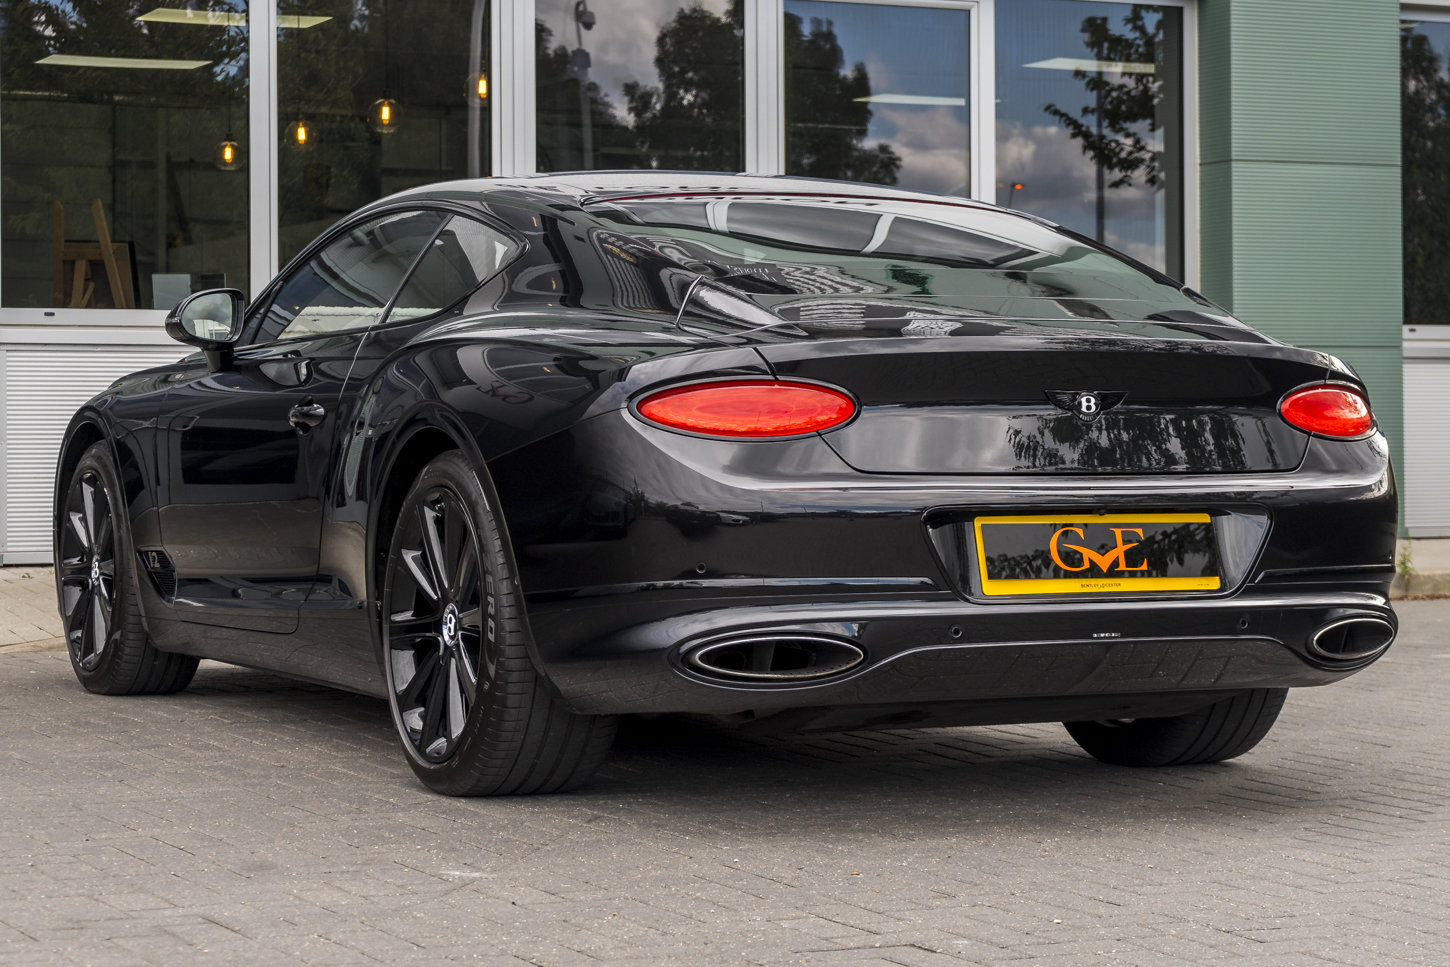 Bentley Continental GT 2019 For Sale (picture 3 of 6)